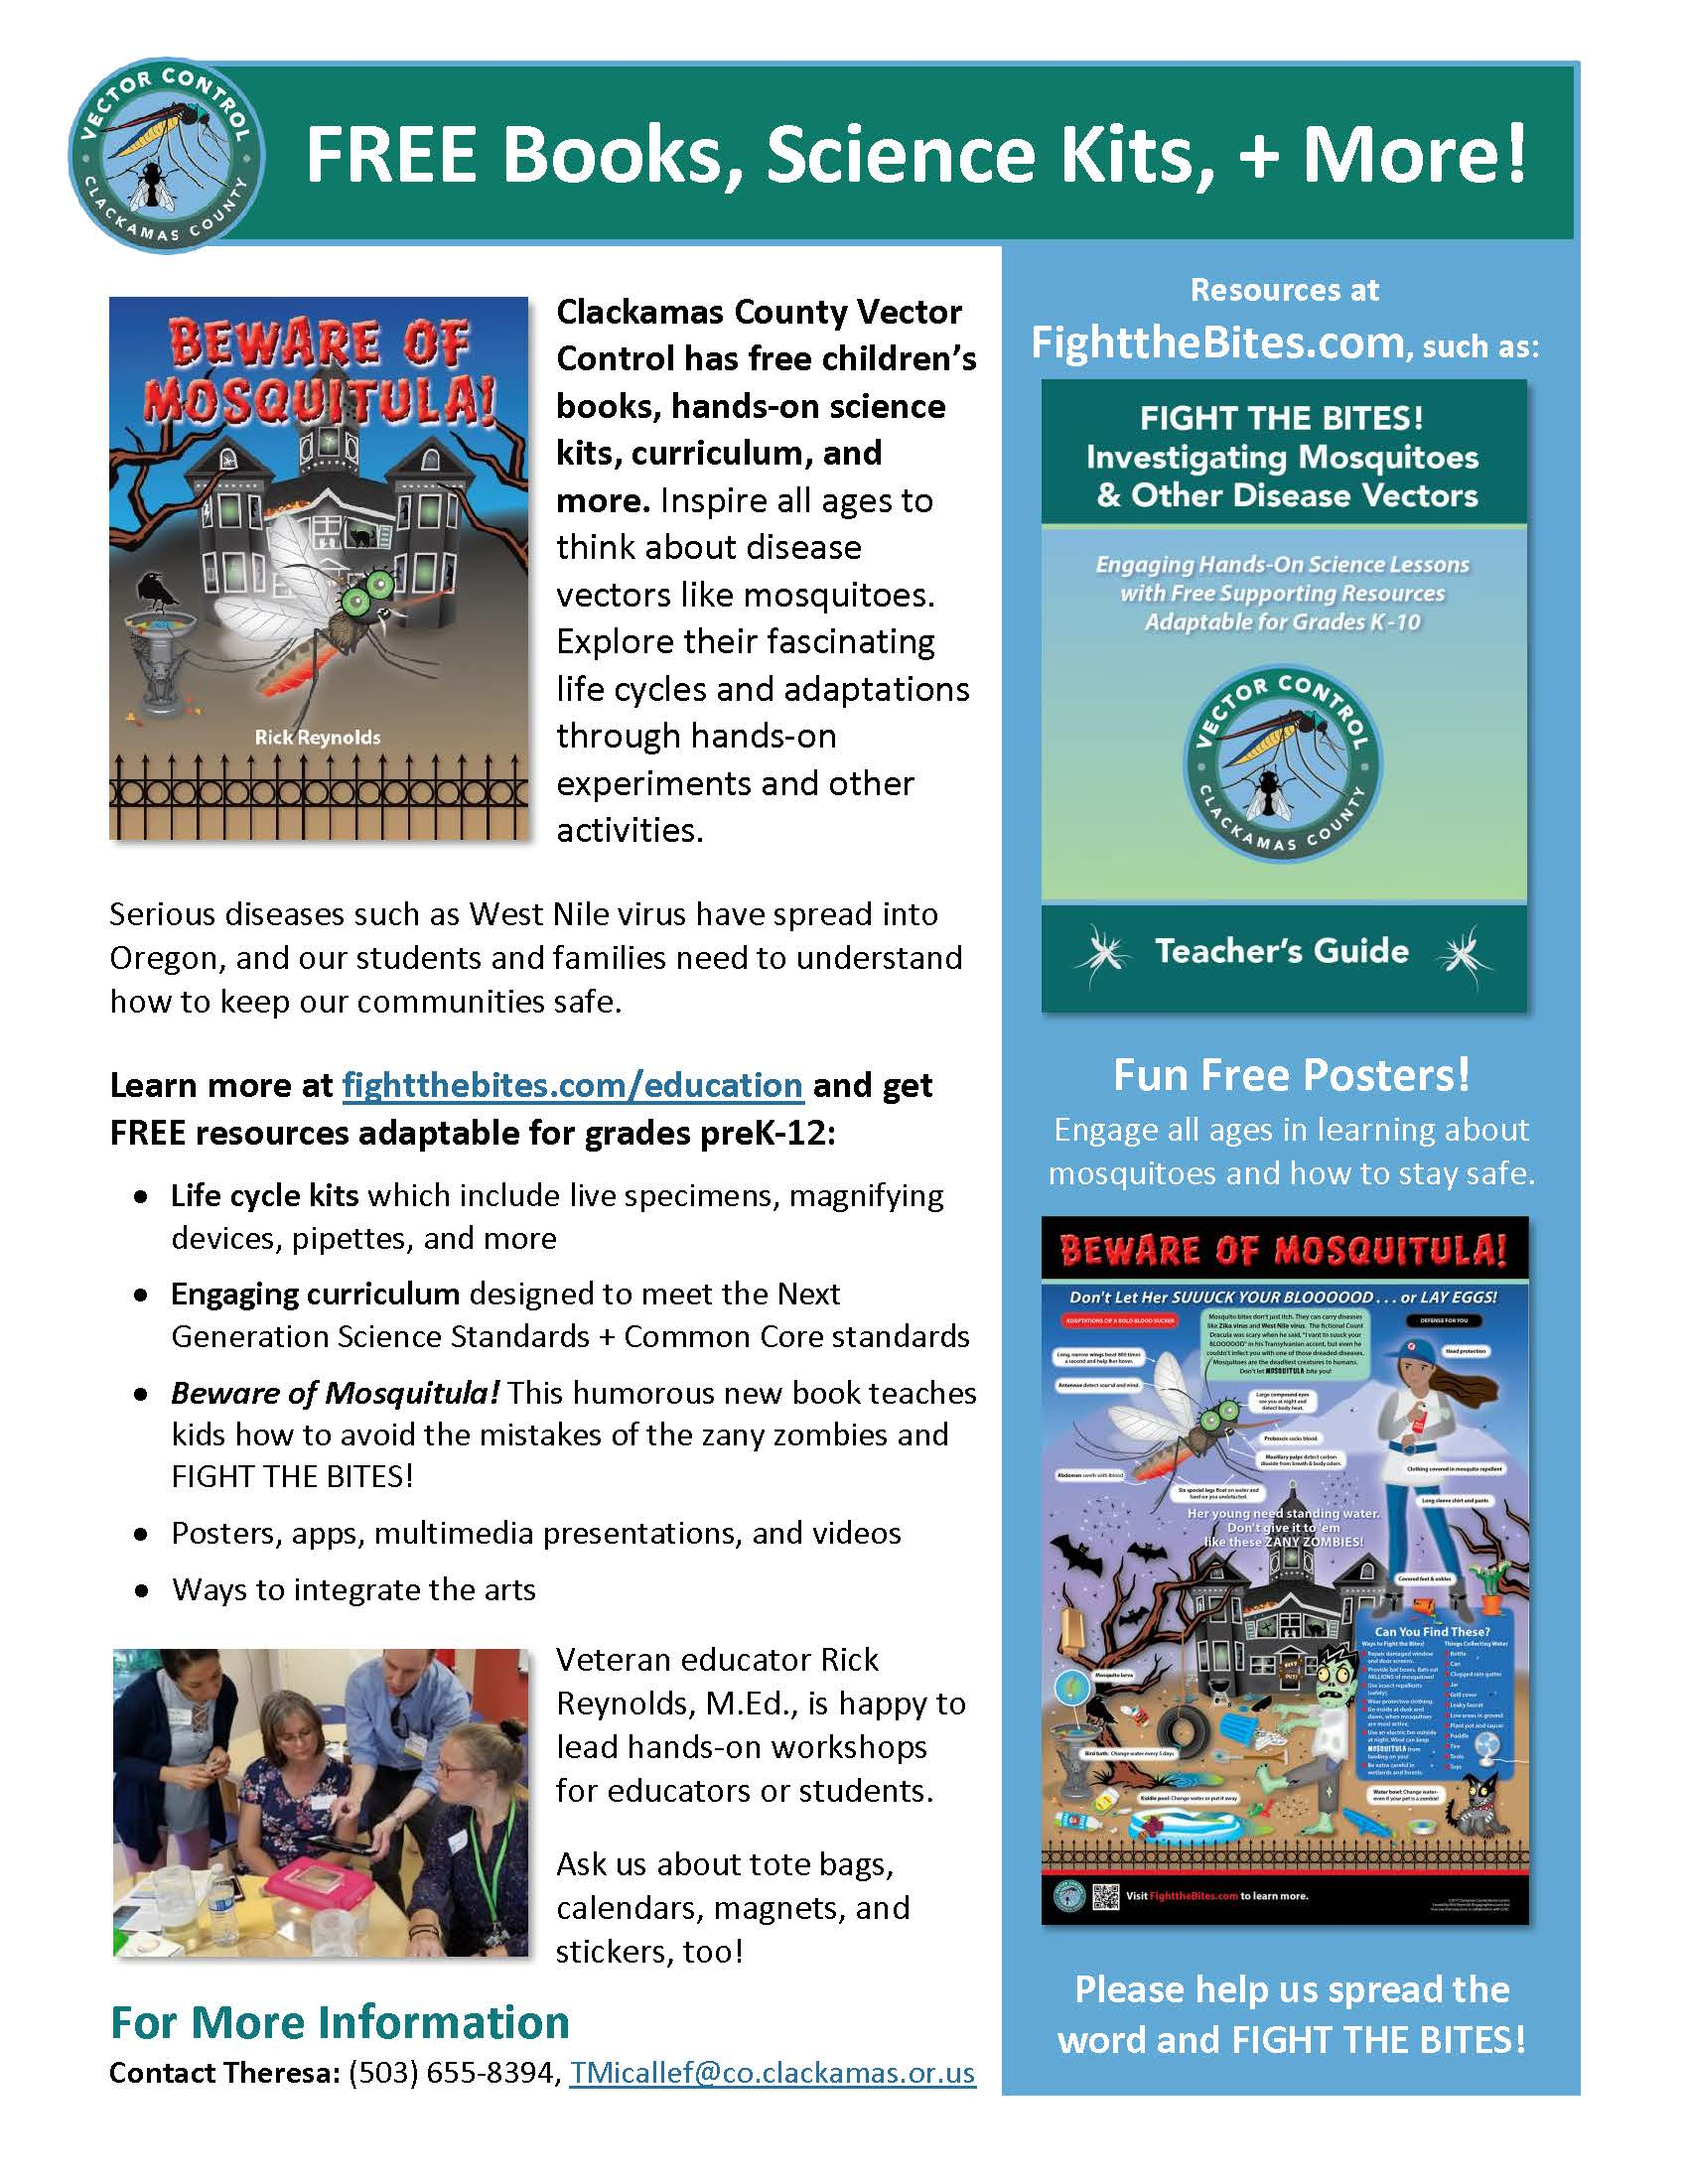 FREE Books, Science Kits, + More! flyer cover